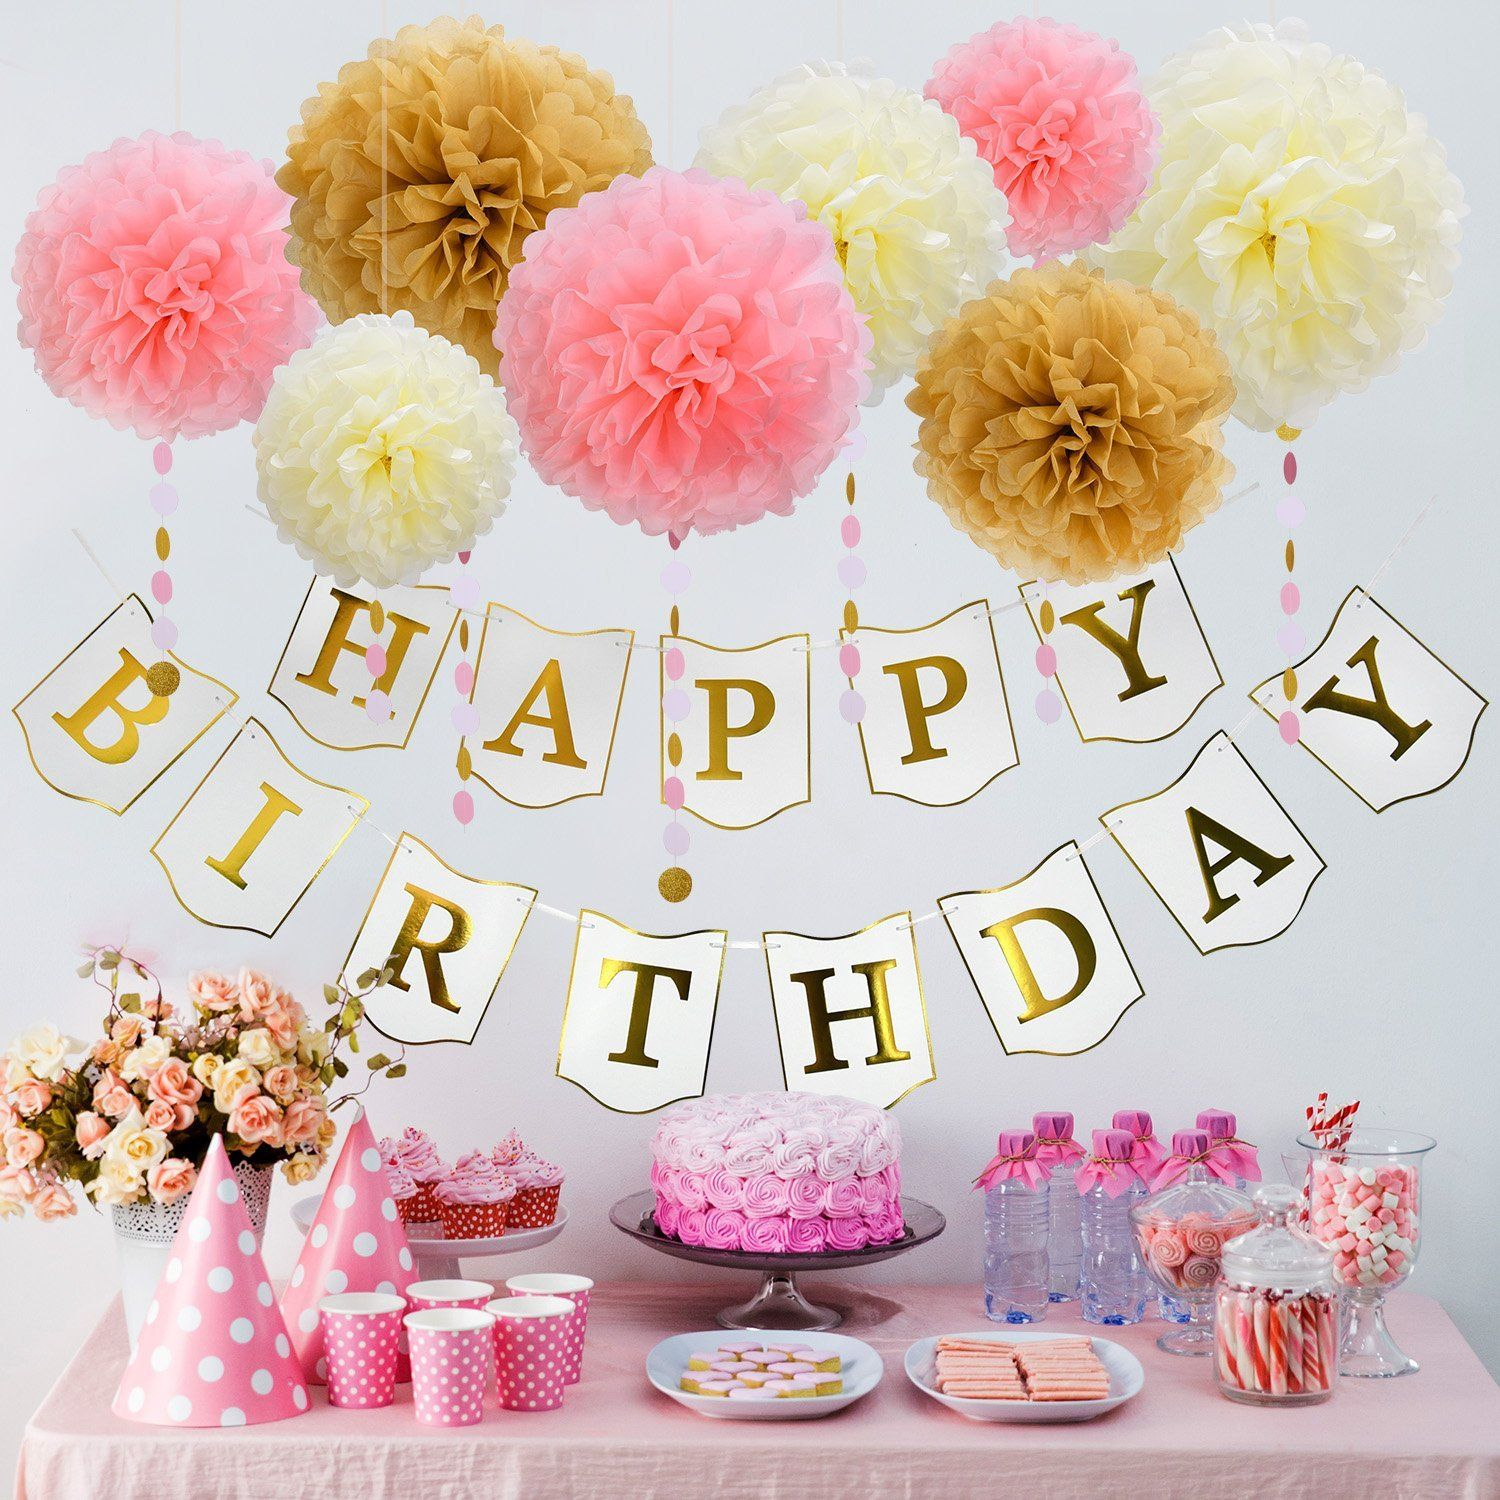 Mudder Happy Birthday Bunting Banner Circle Dot Garland with ...